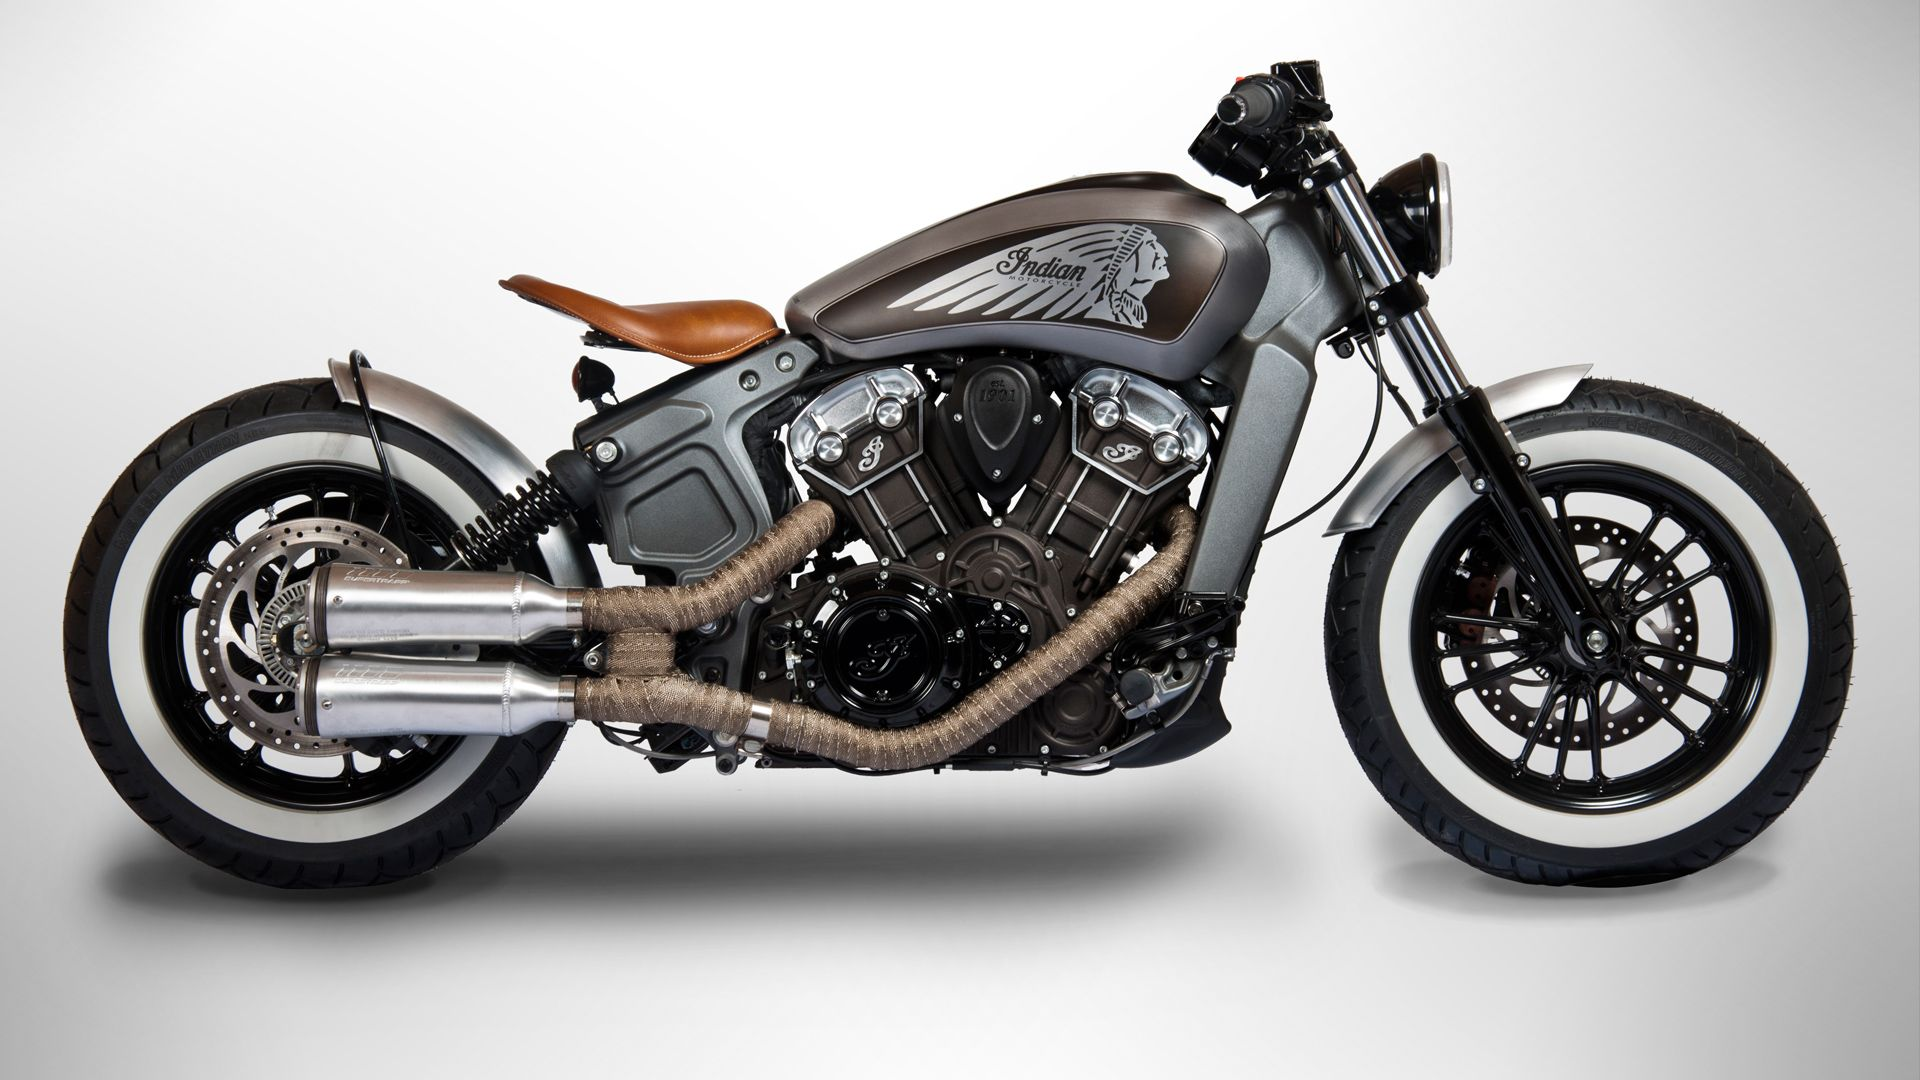 Vote For A Bike Project Scout Custom Scout Contest With Images